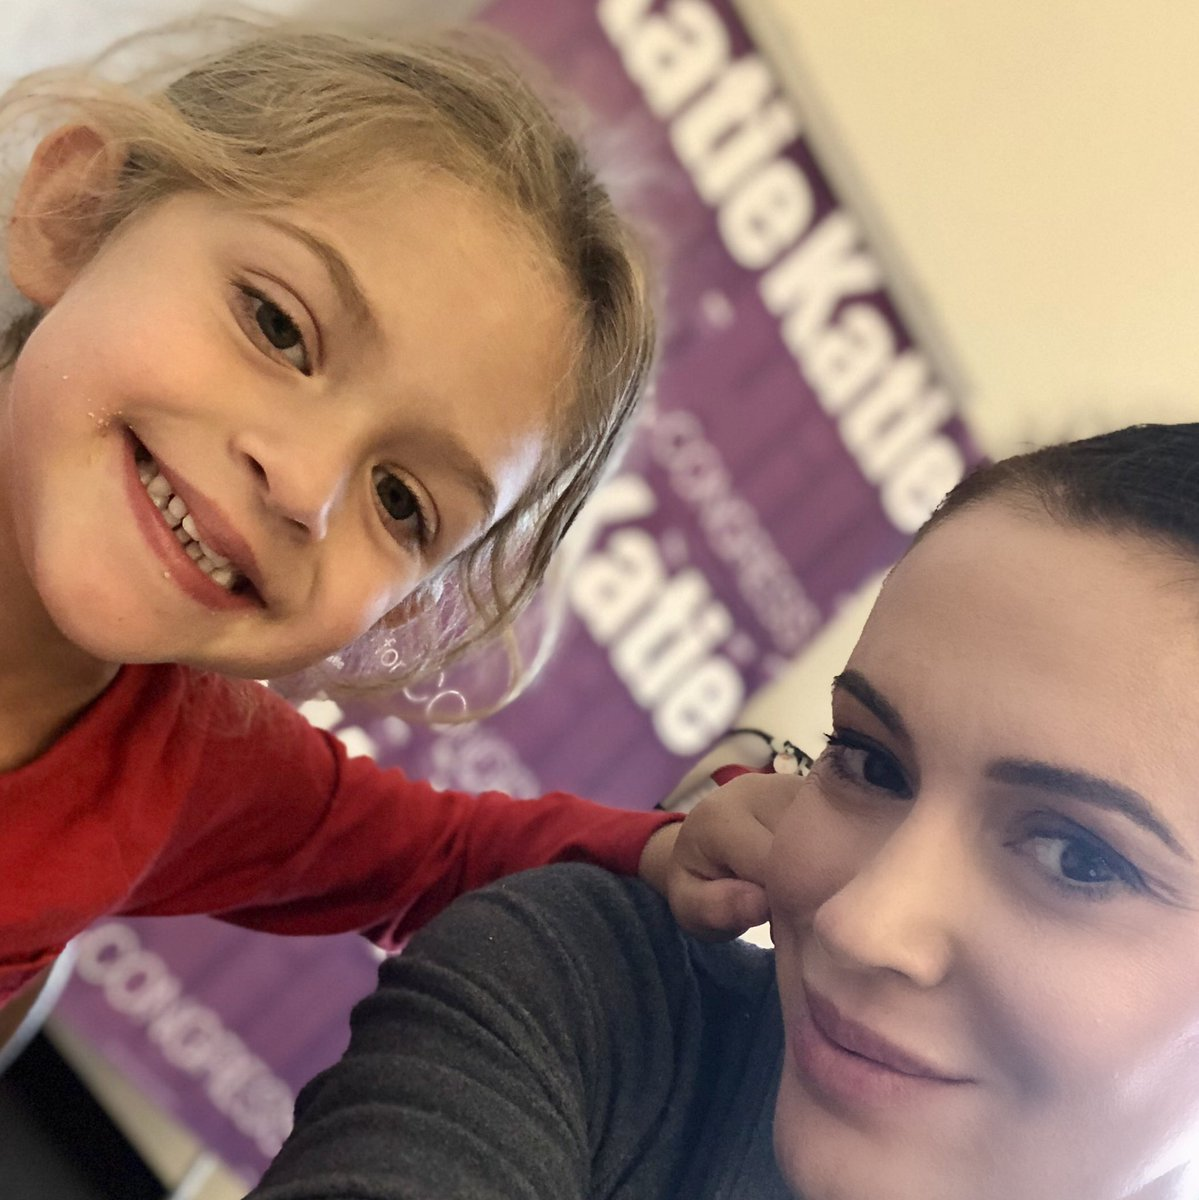 Bella and I are phone banking for @KatieHill4CA because we pledged to @AdyBarken we would #BeAHero.